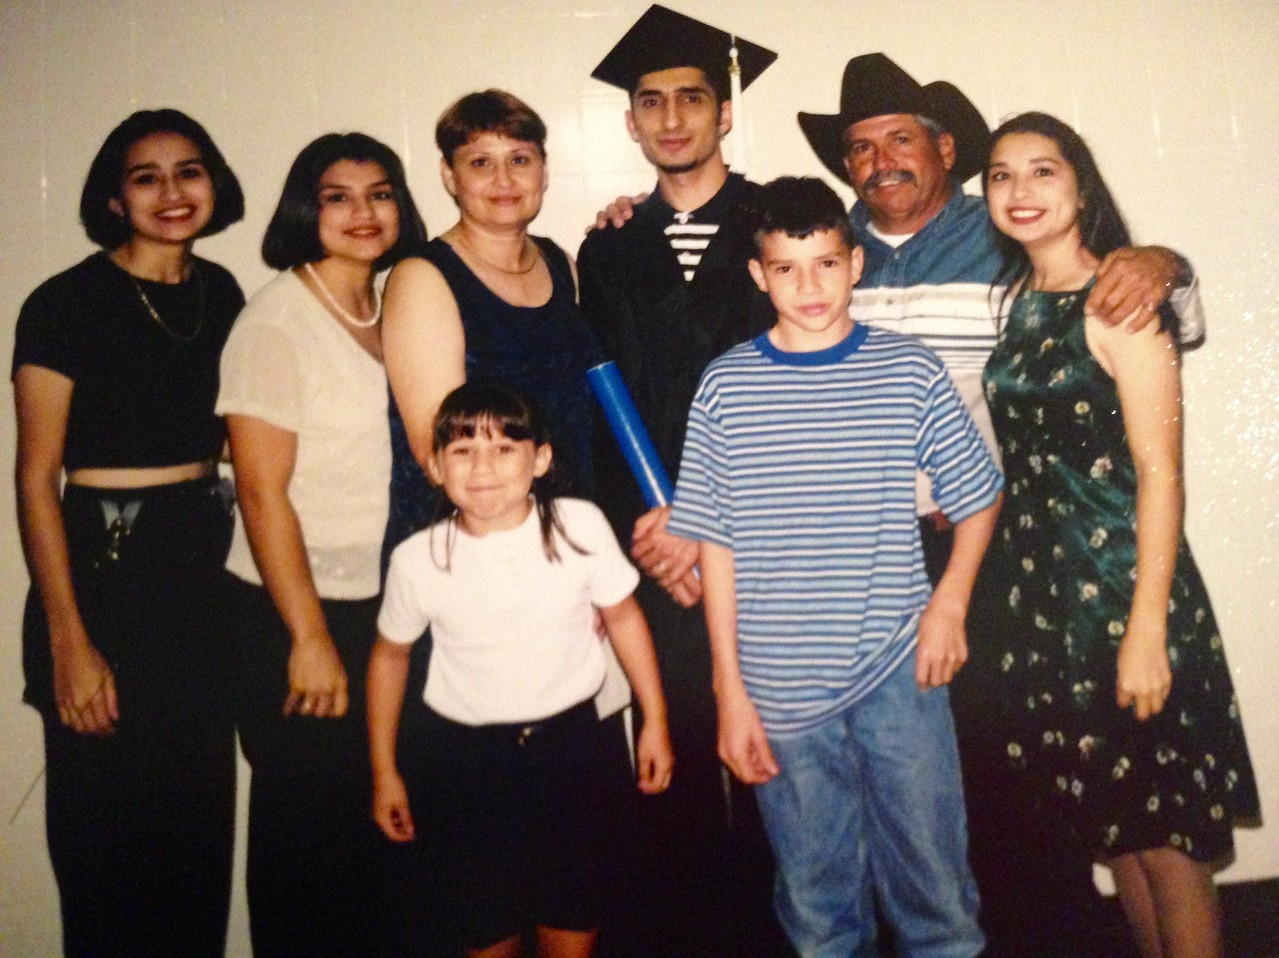 TAMUK graduation (BA) with family and niece. front left to right, Desiree (niece), Jacob (brother); back left to right, Jessica (sister), Monica (sister), Gloria (mom), me, Yndalecio (father ...